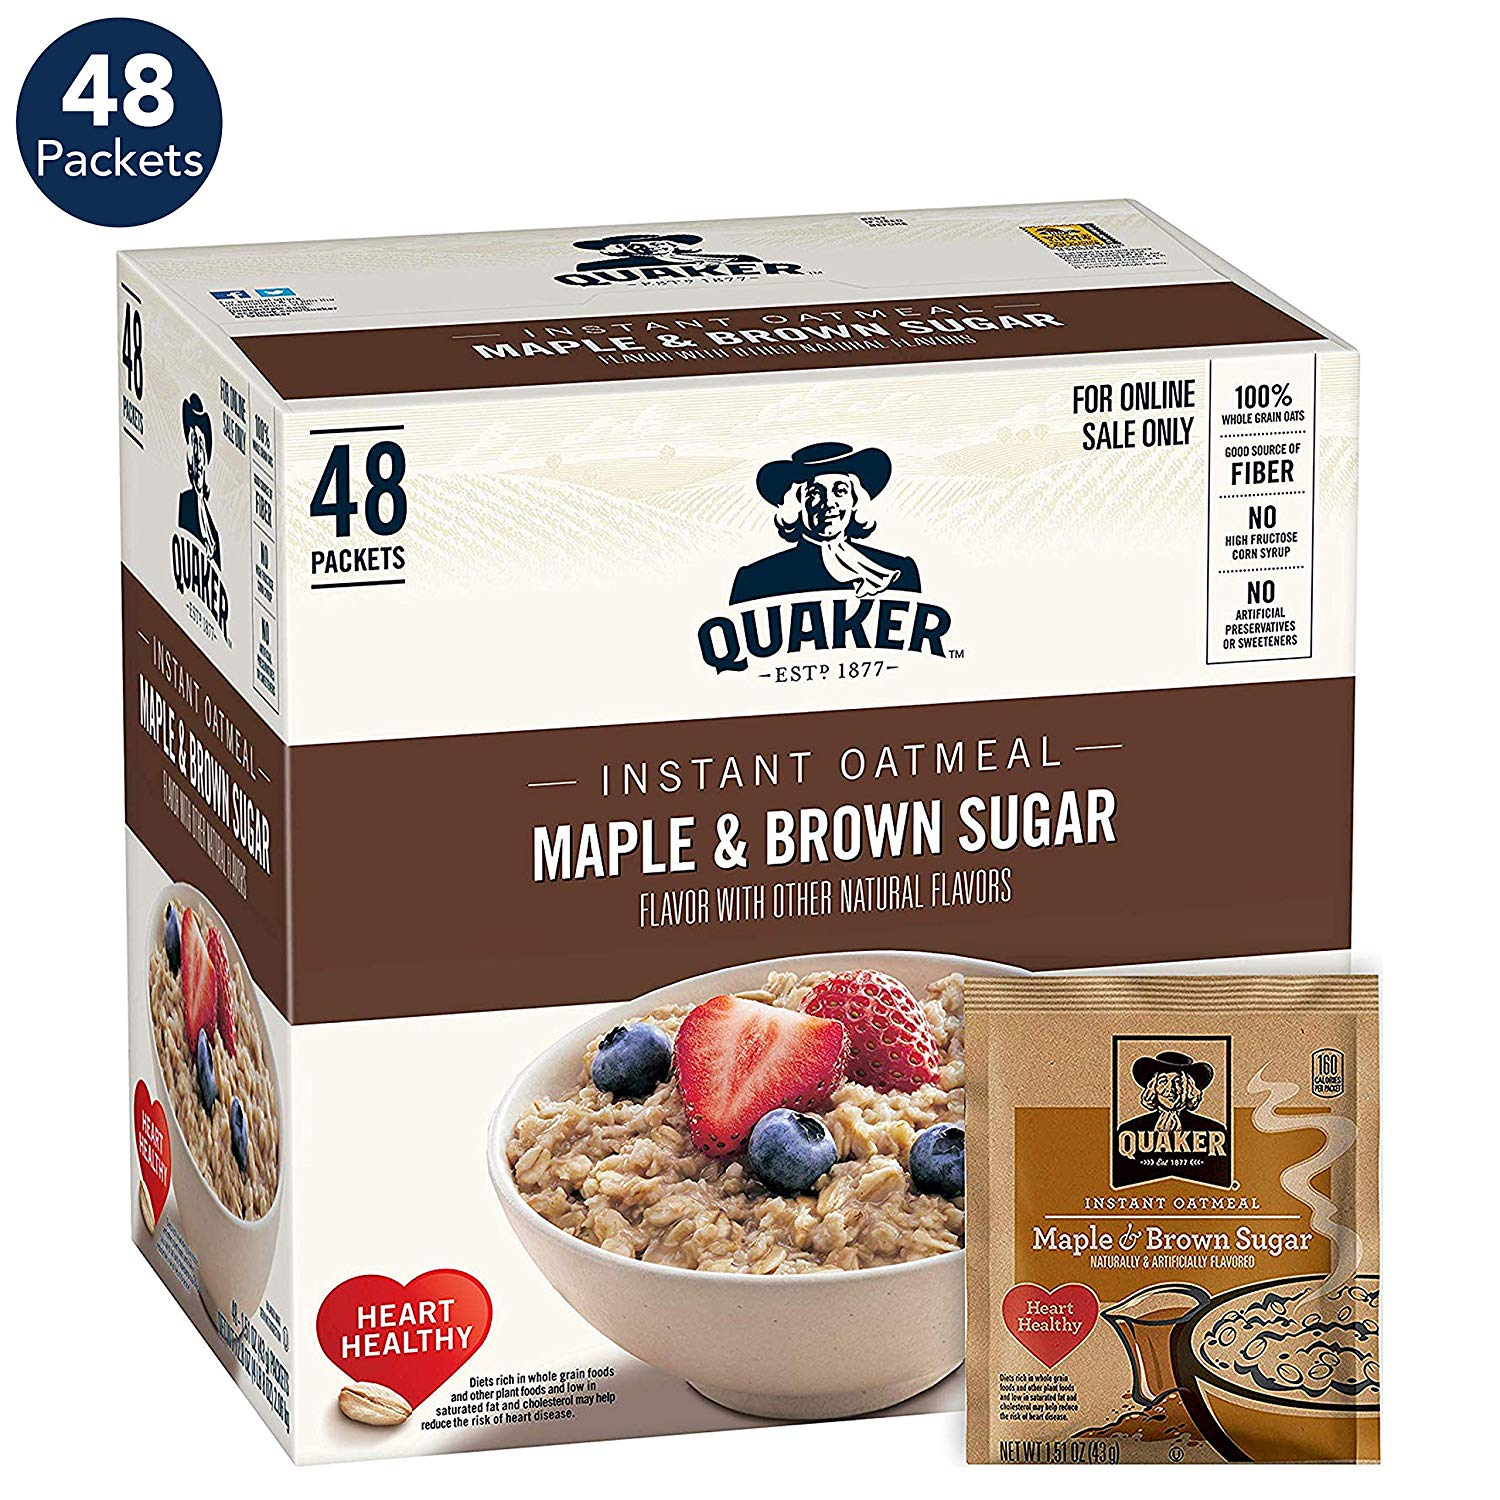 48 count Quaker Instant Oatmeal, Maple & Brown Sugar only $6.03 with coupon!